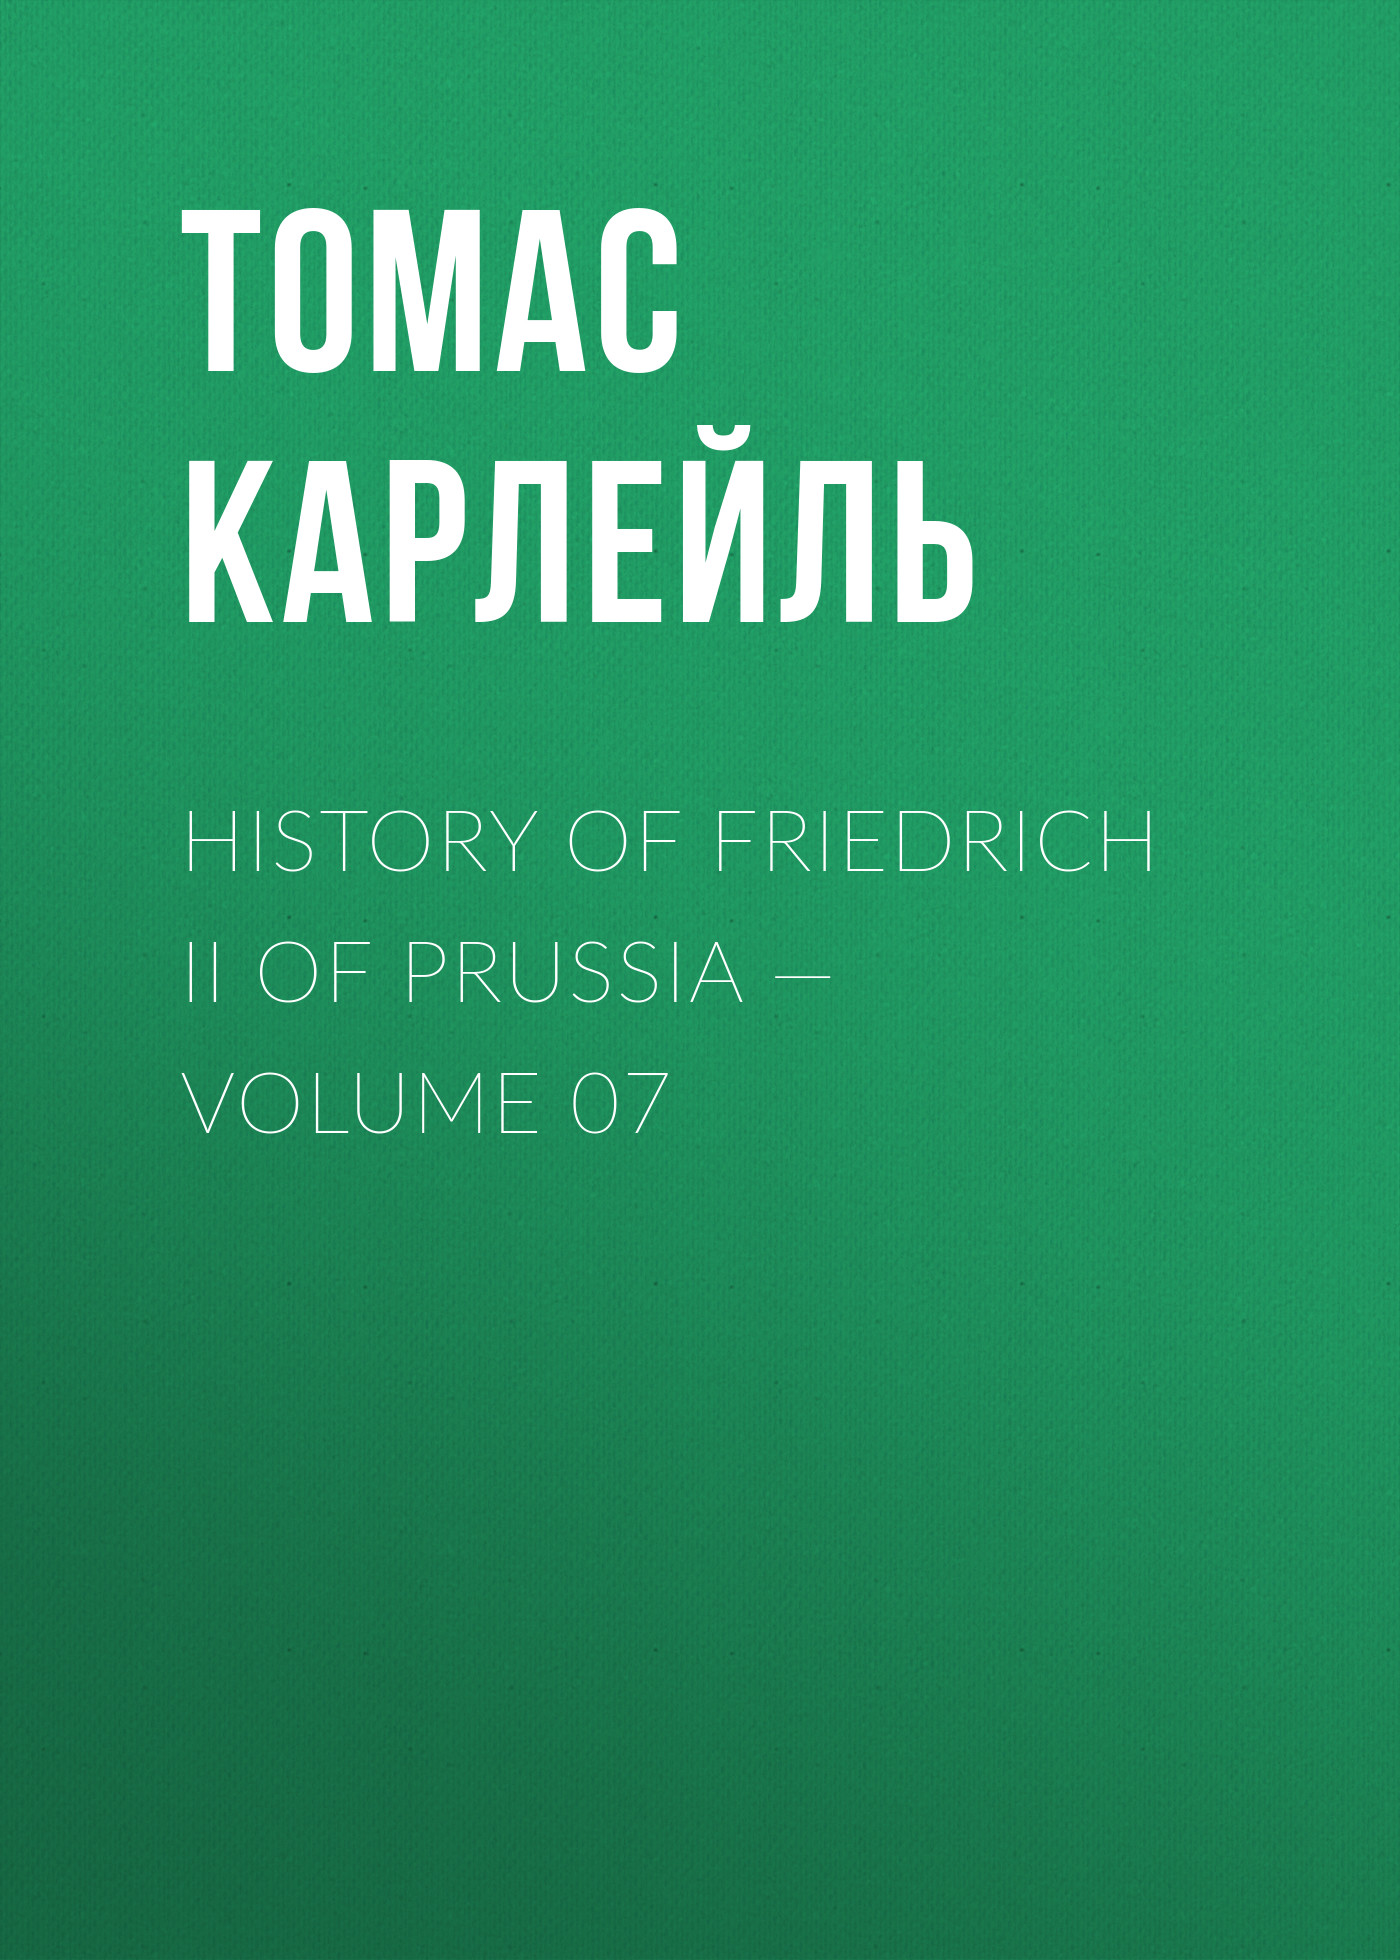 Томас Карлейль History of Friedrich II of Prussia — Volume 07 томас карлейль history of friedrich ii of prussia volume 10